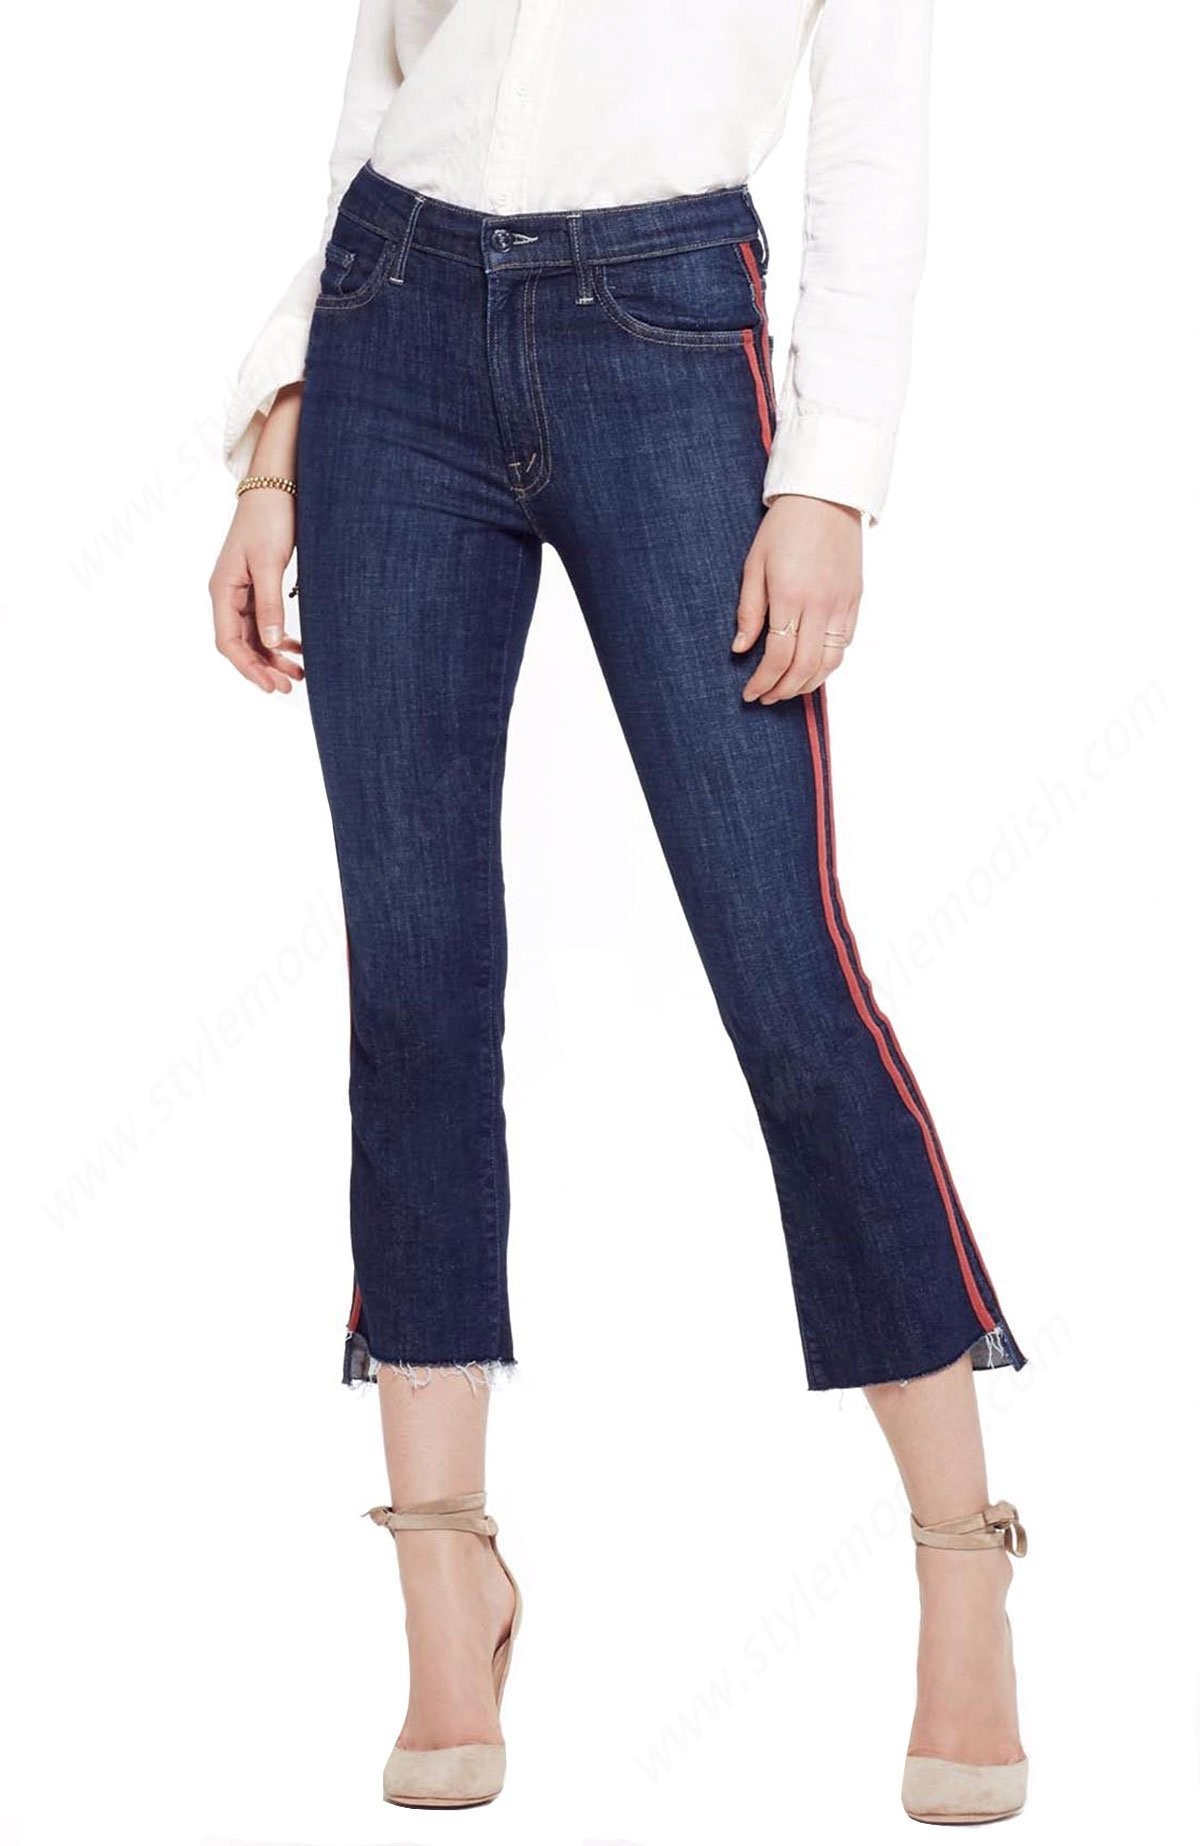 Lady's Mother Denim Insider Crop Step Fray - Speed Racer - Lady's Mother Denim Insider Crop Step Fray - Speed Racer